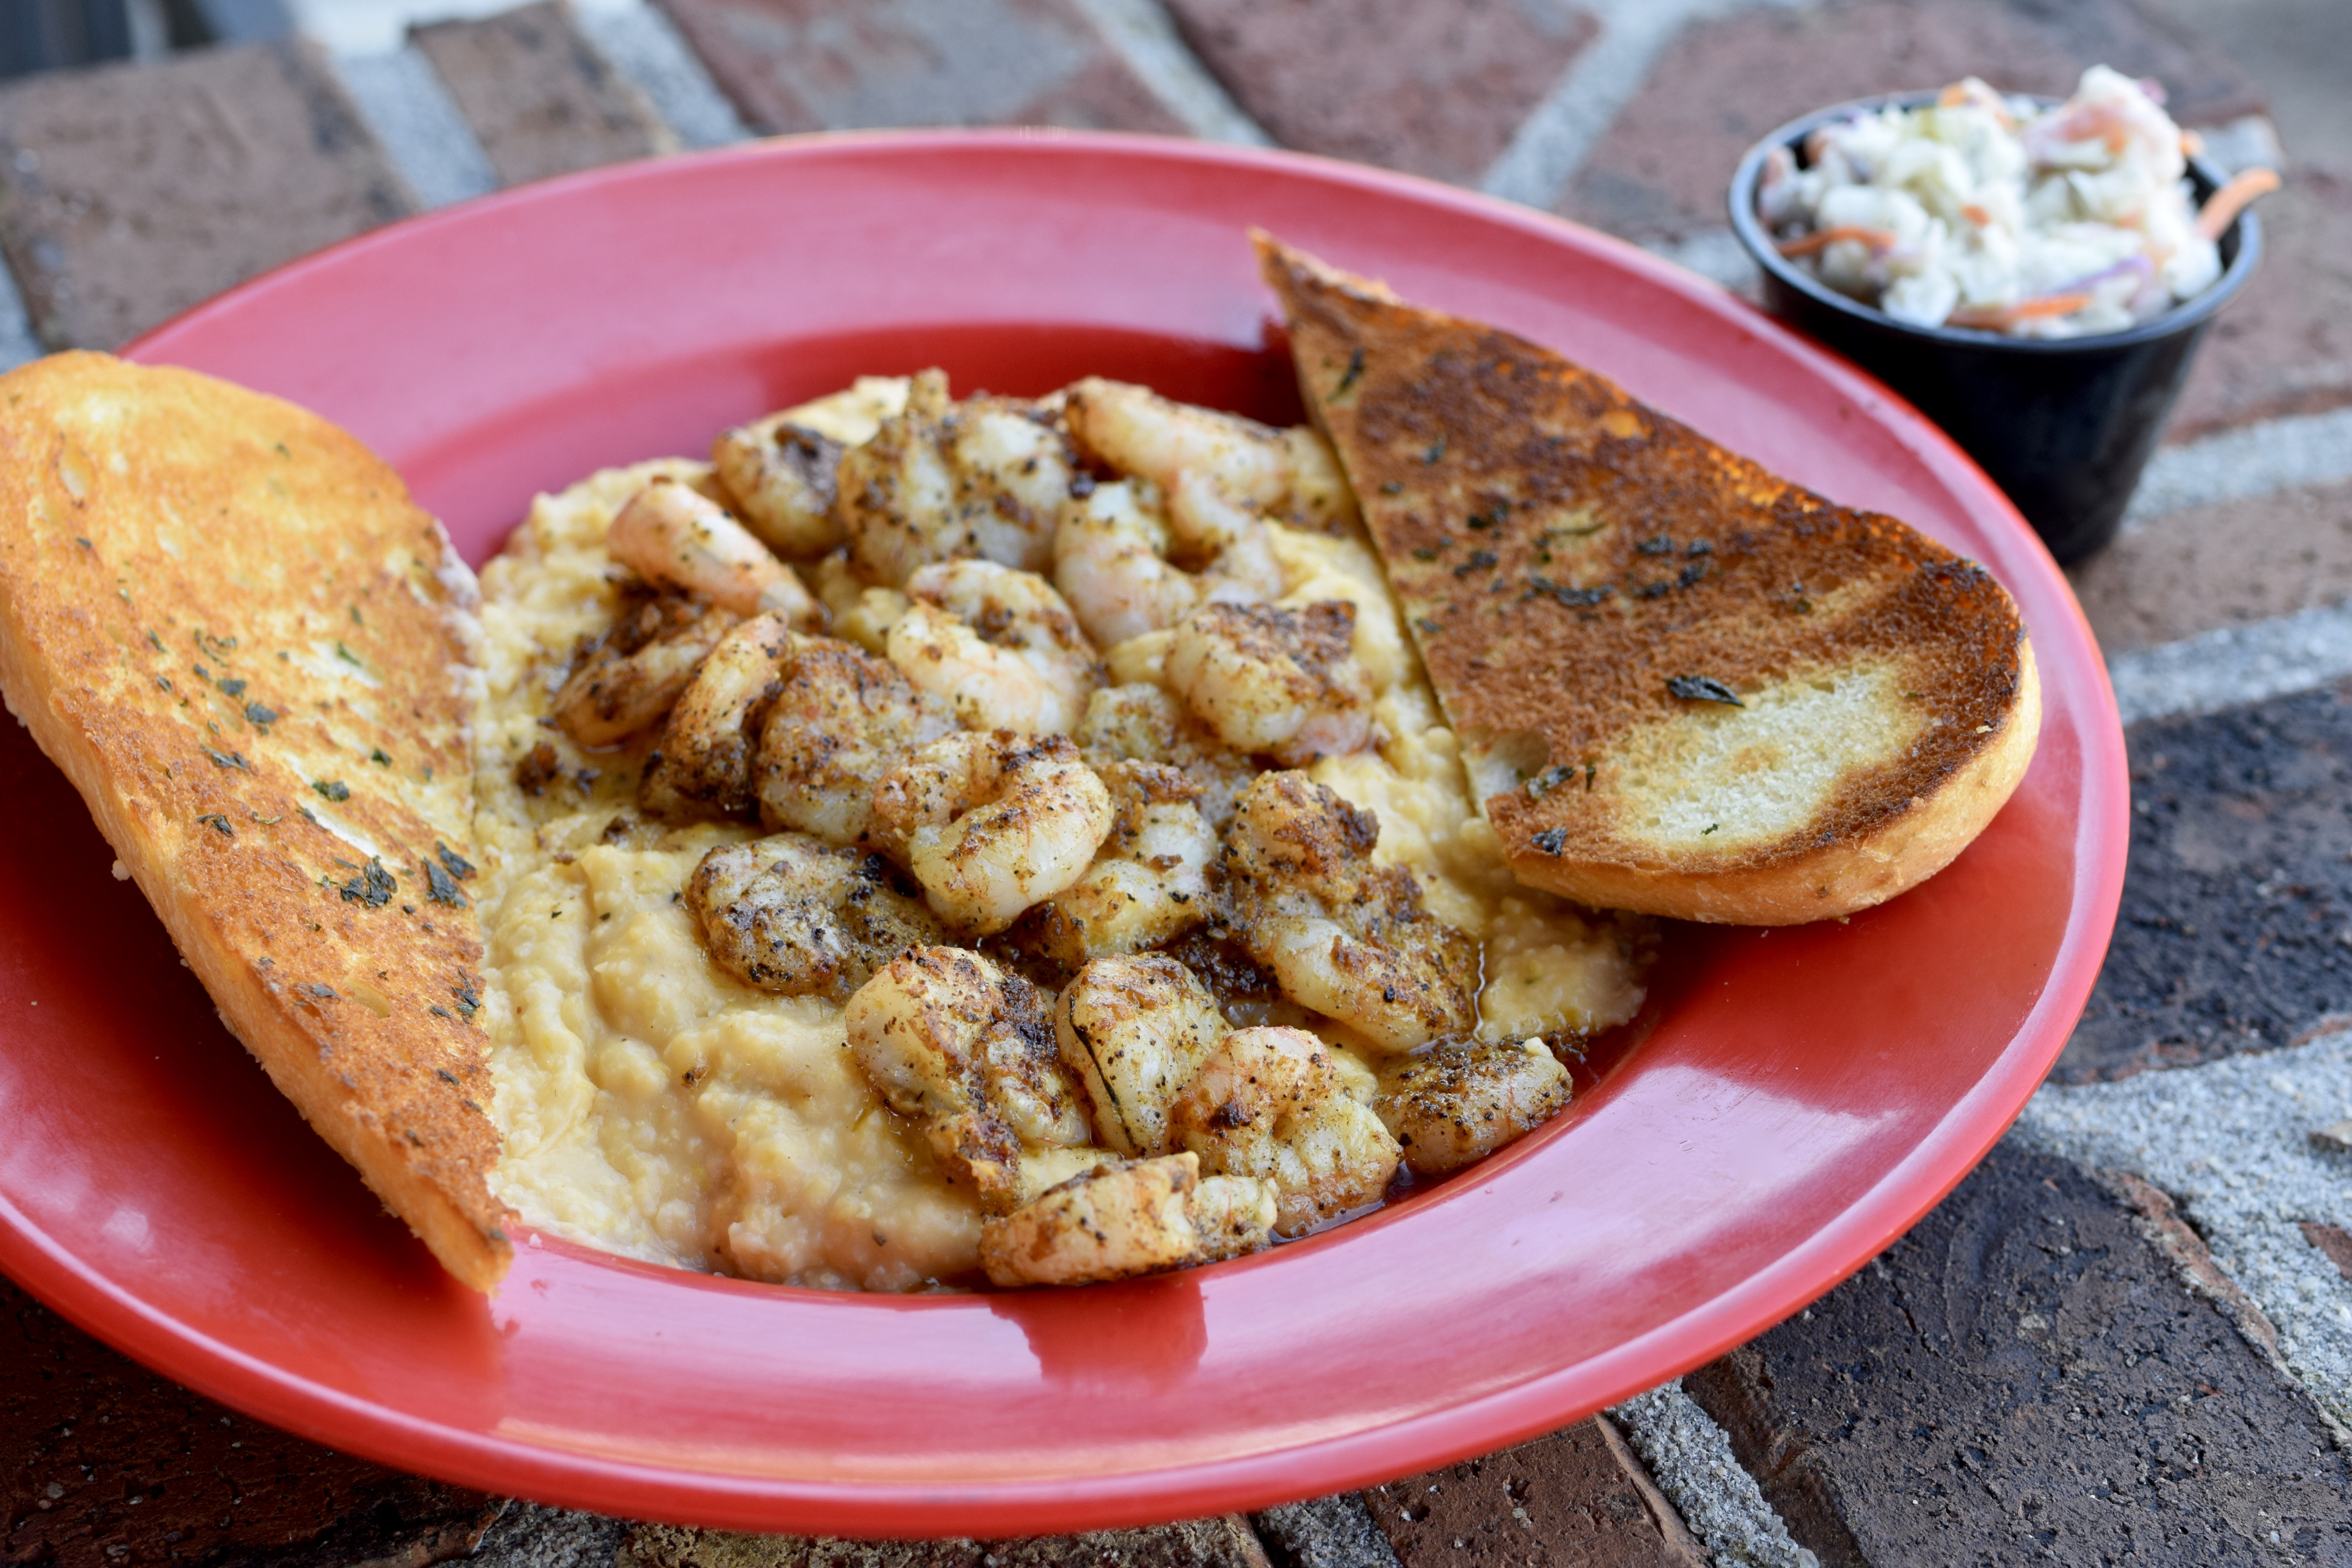 Classic shrimp and grits with a side of buttered toast